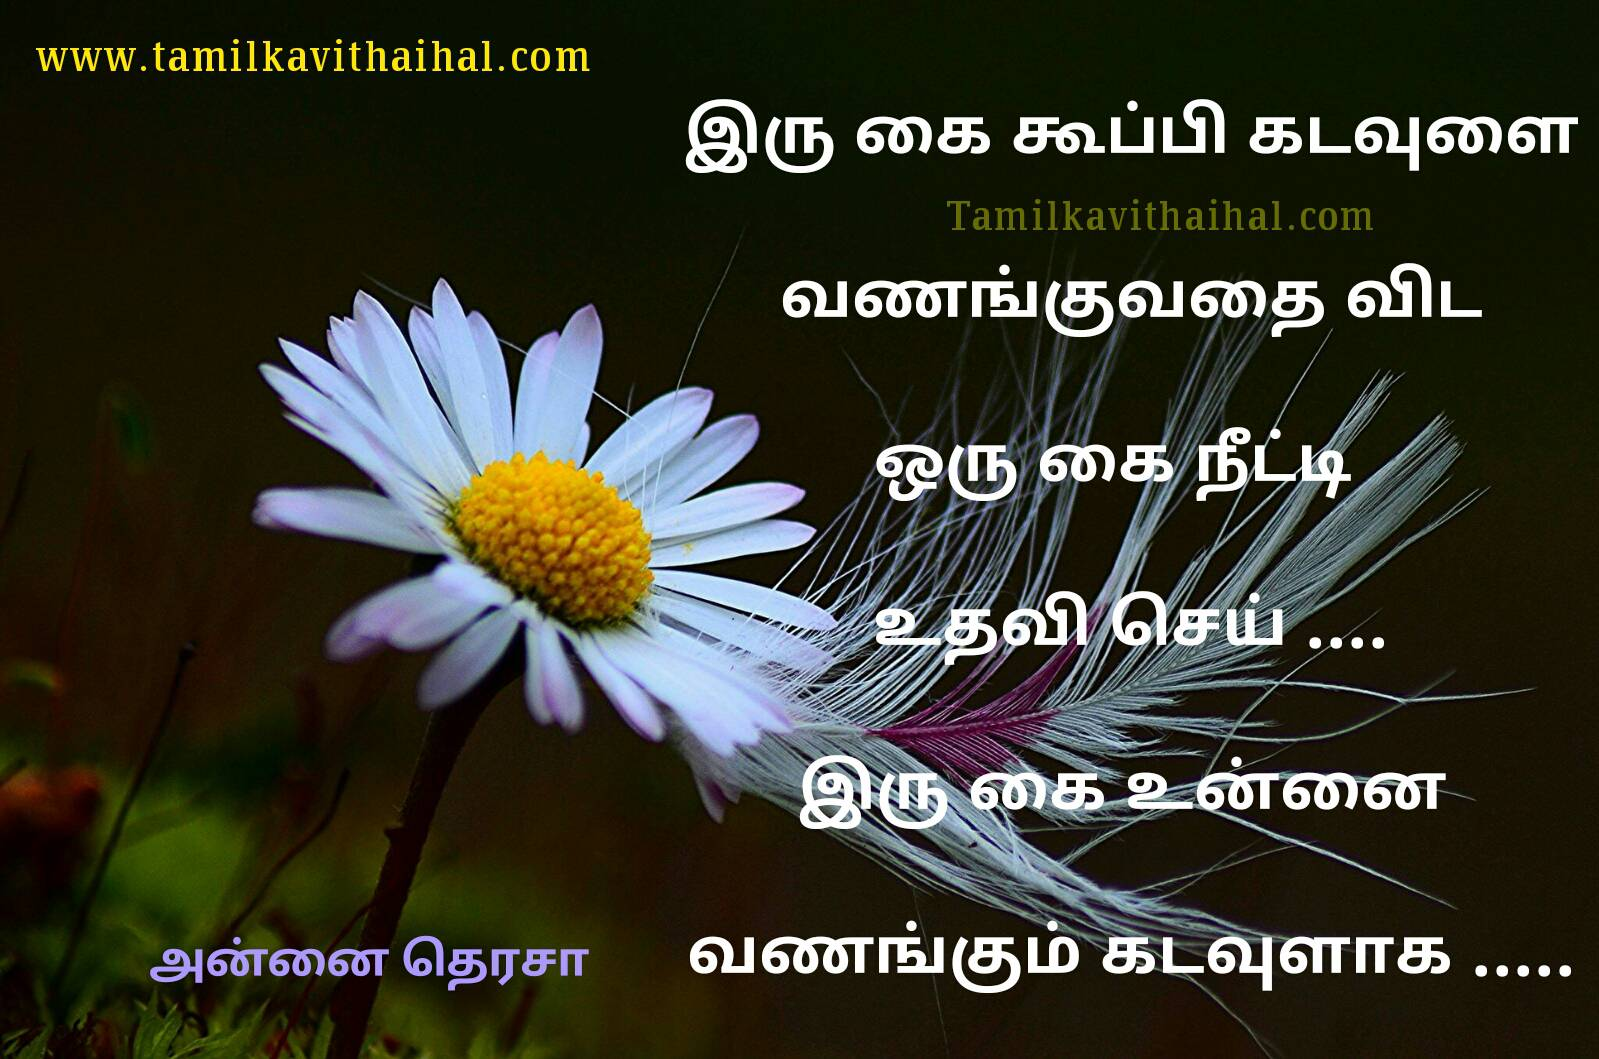 Beautiful mother therasa ponmozhikal in tamil quotes about god help life speech hd image